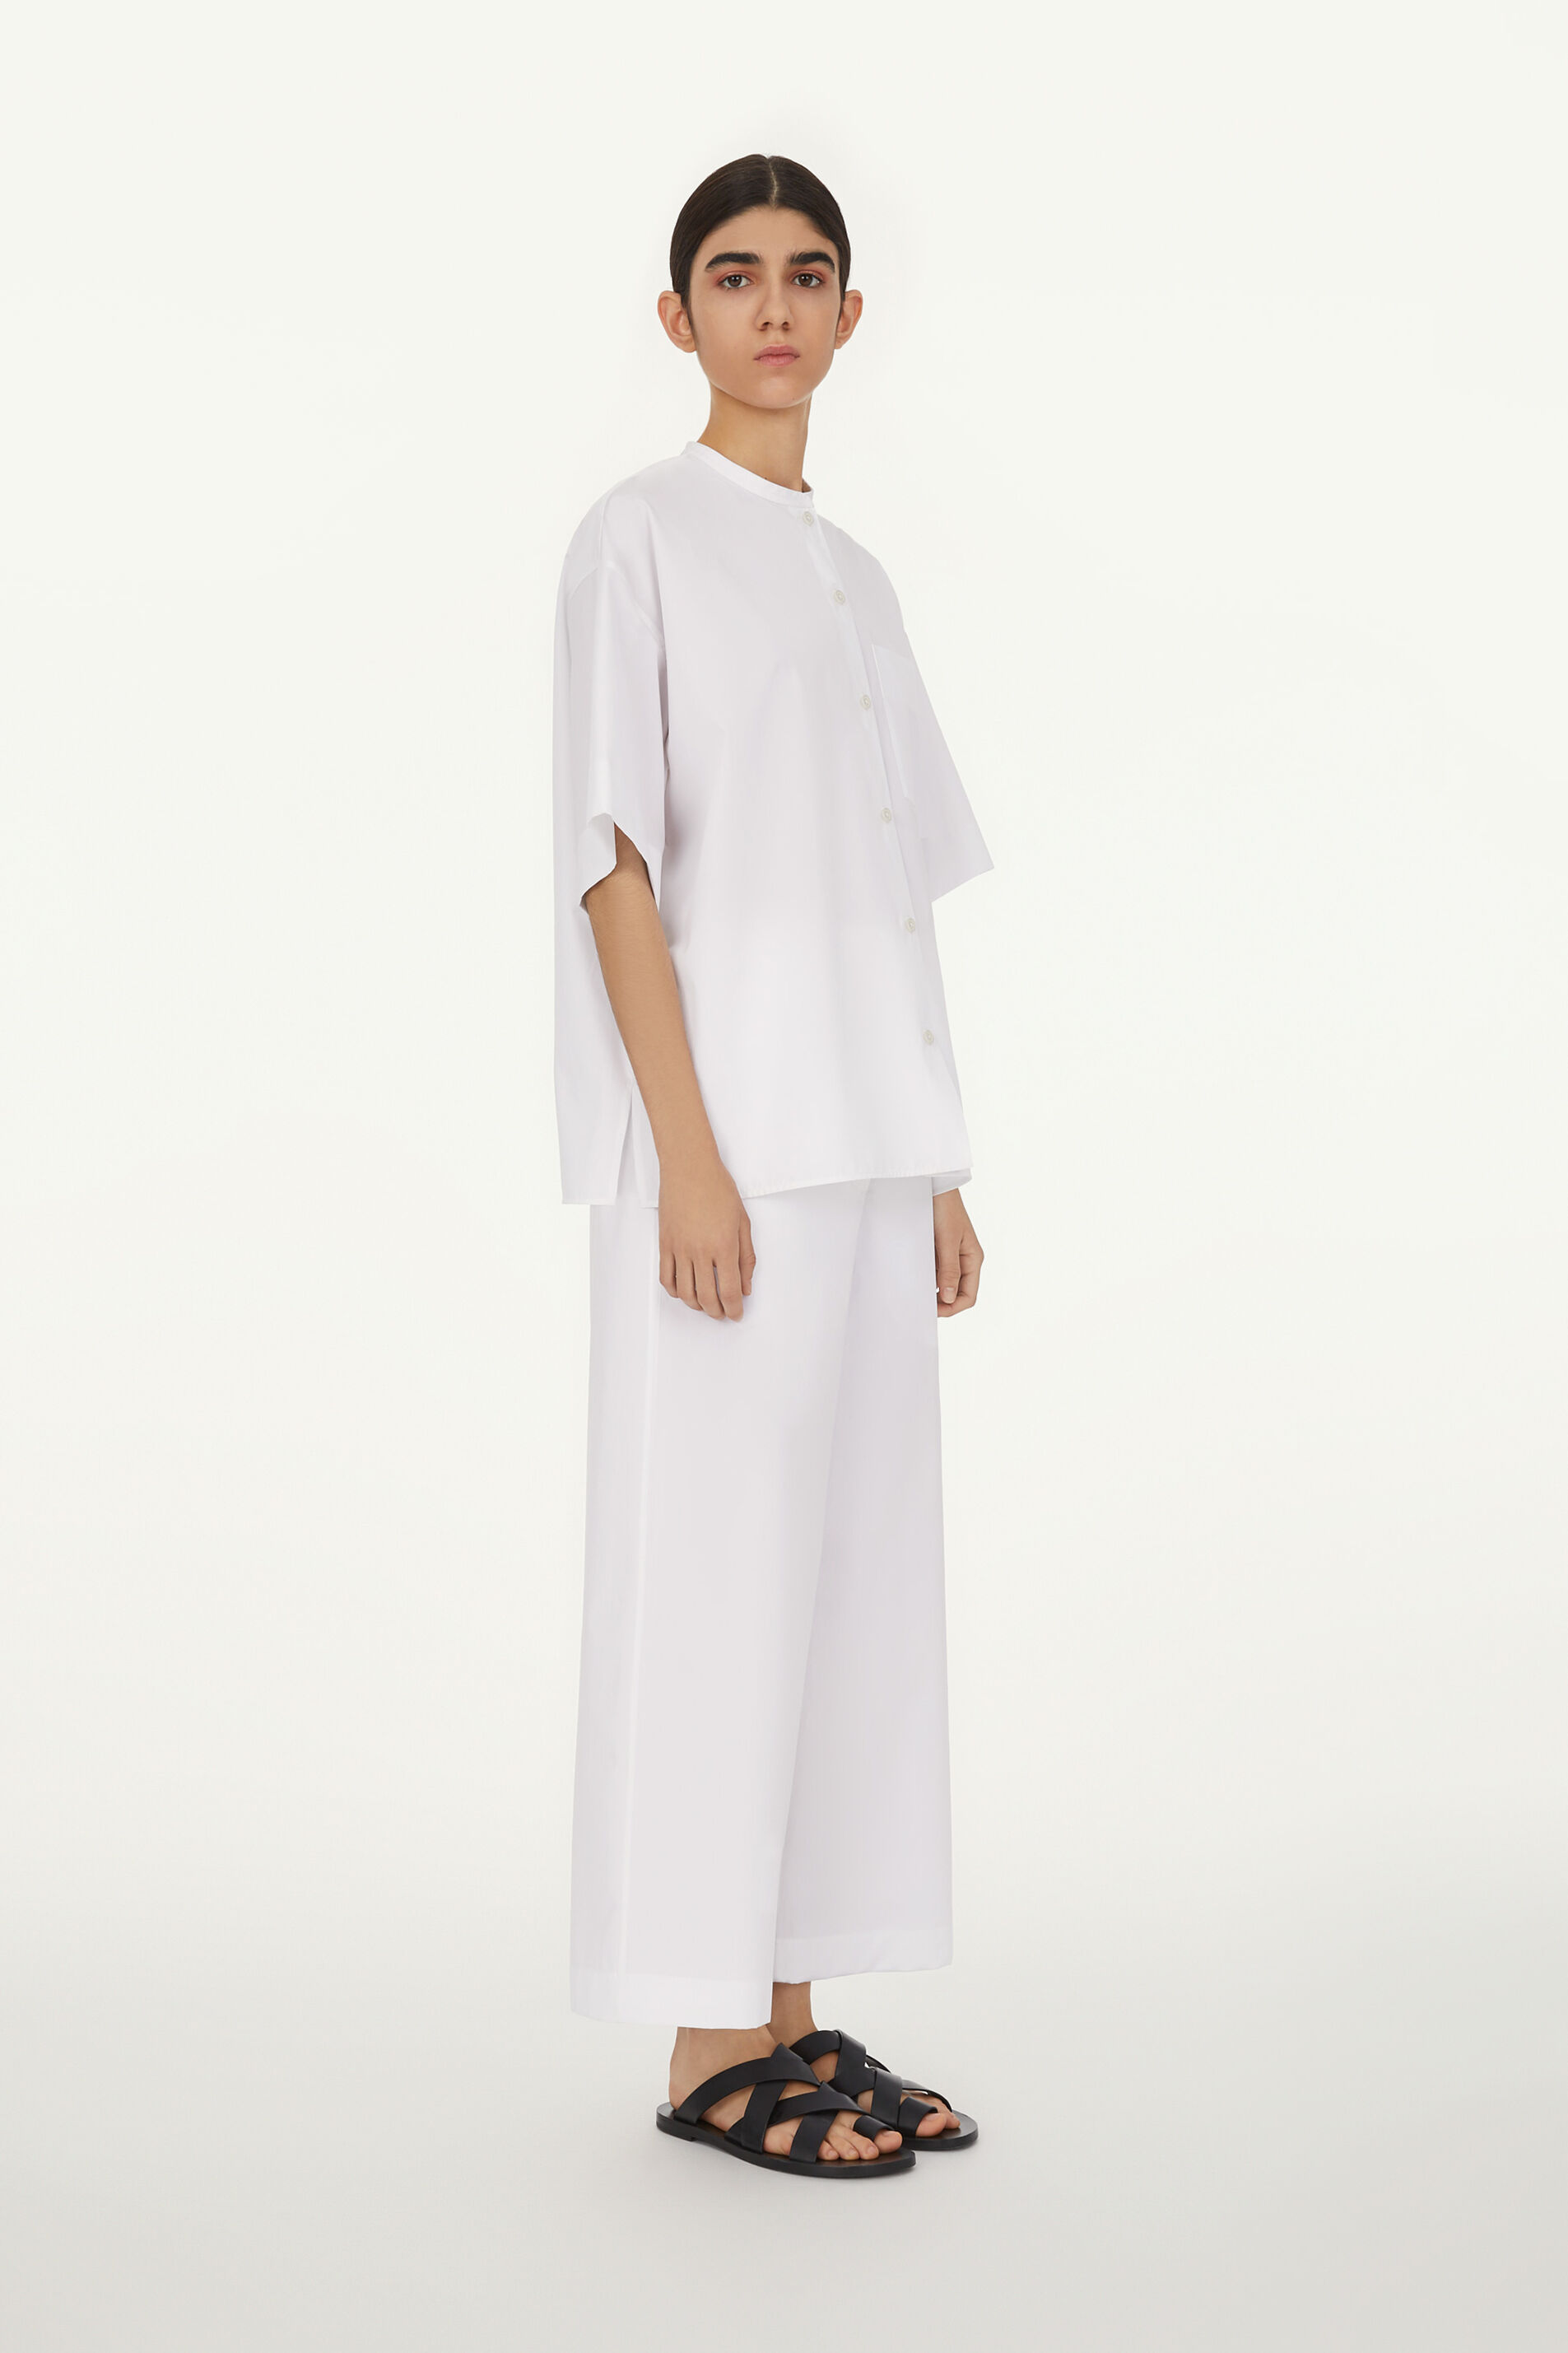 Pyjama Set, white, large